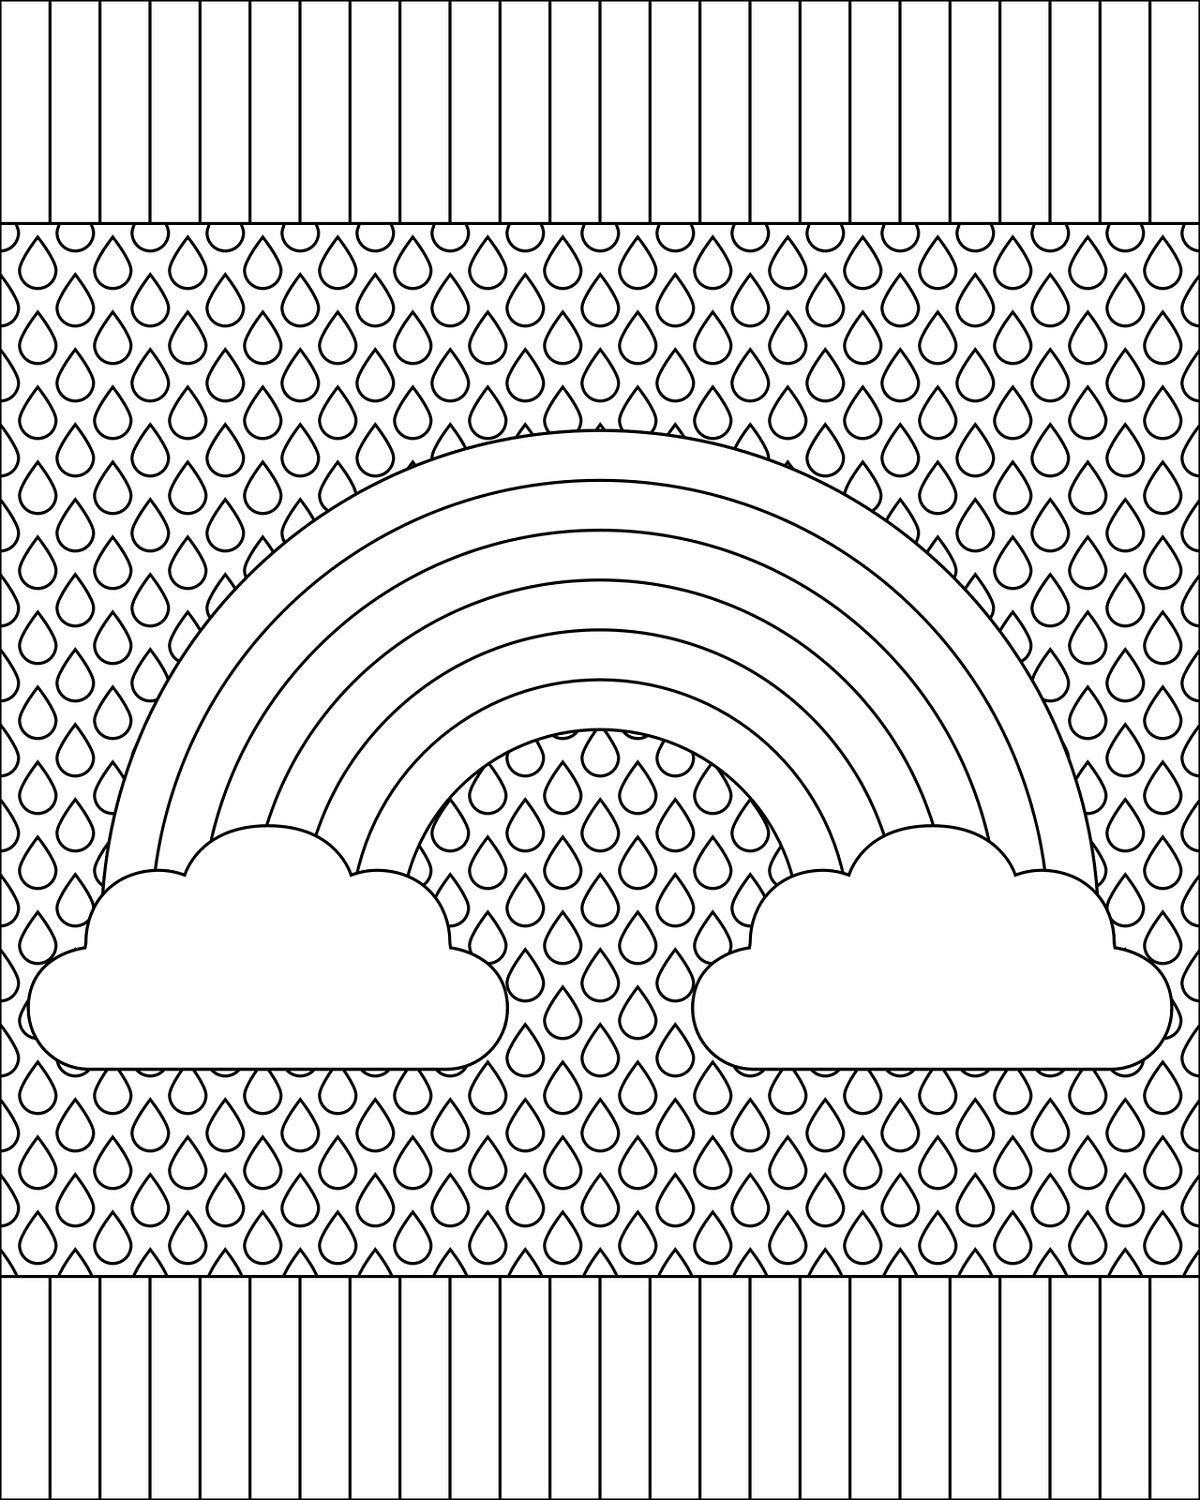 Rainbow Coloring Page For Adults